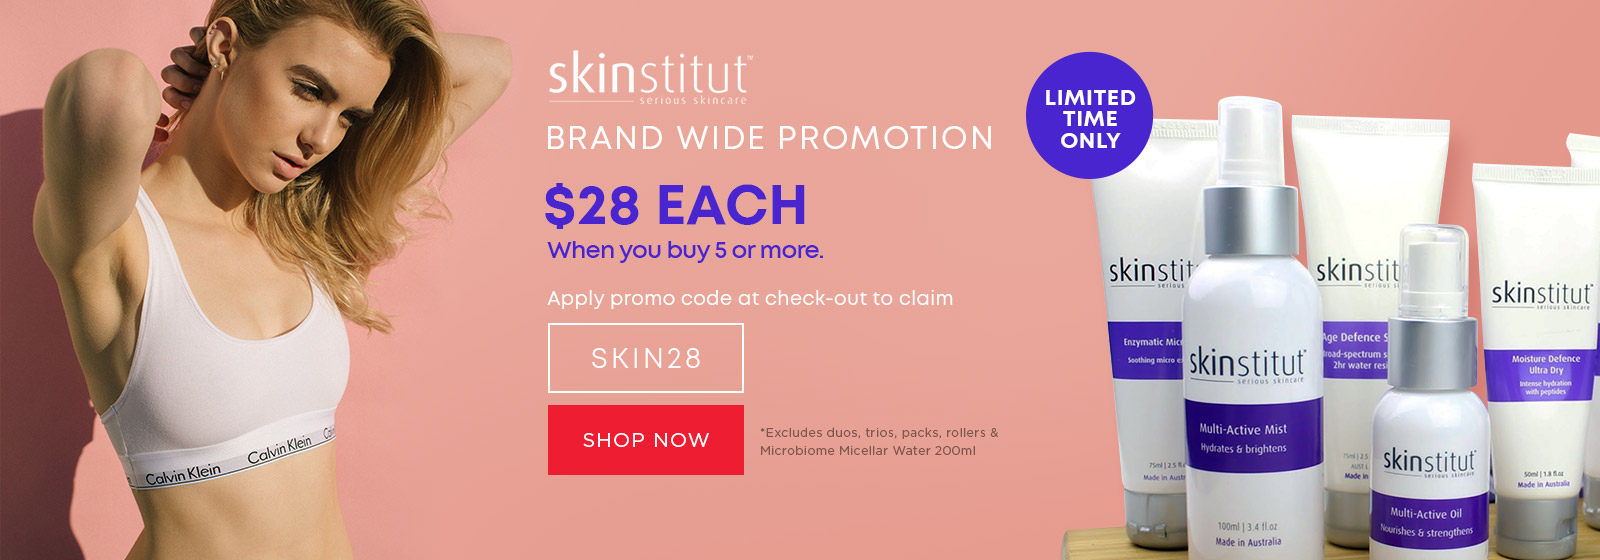 Sale on Skinstitut $28 each only, at Catwalk Australia